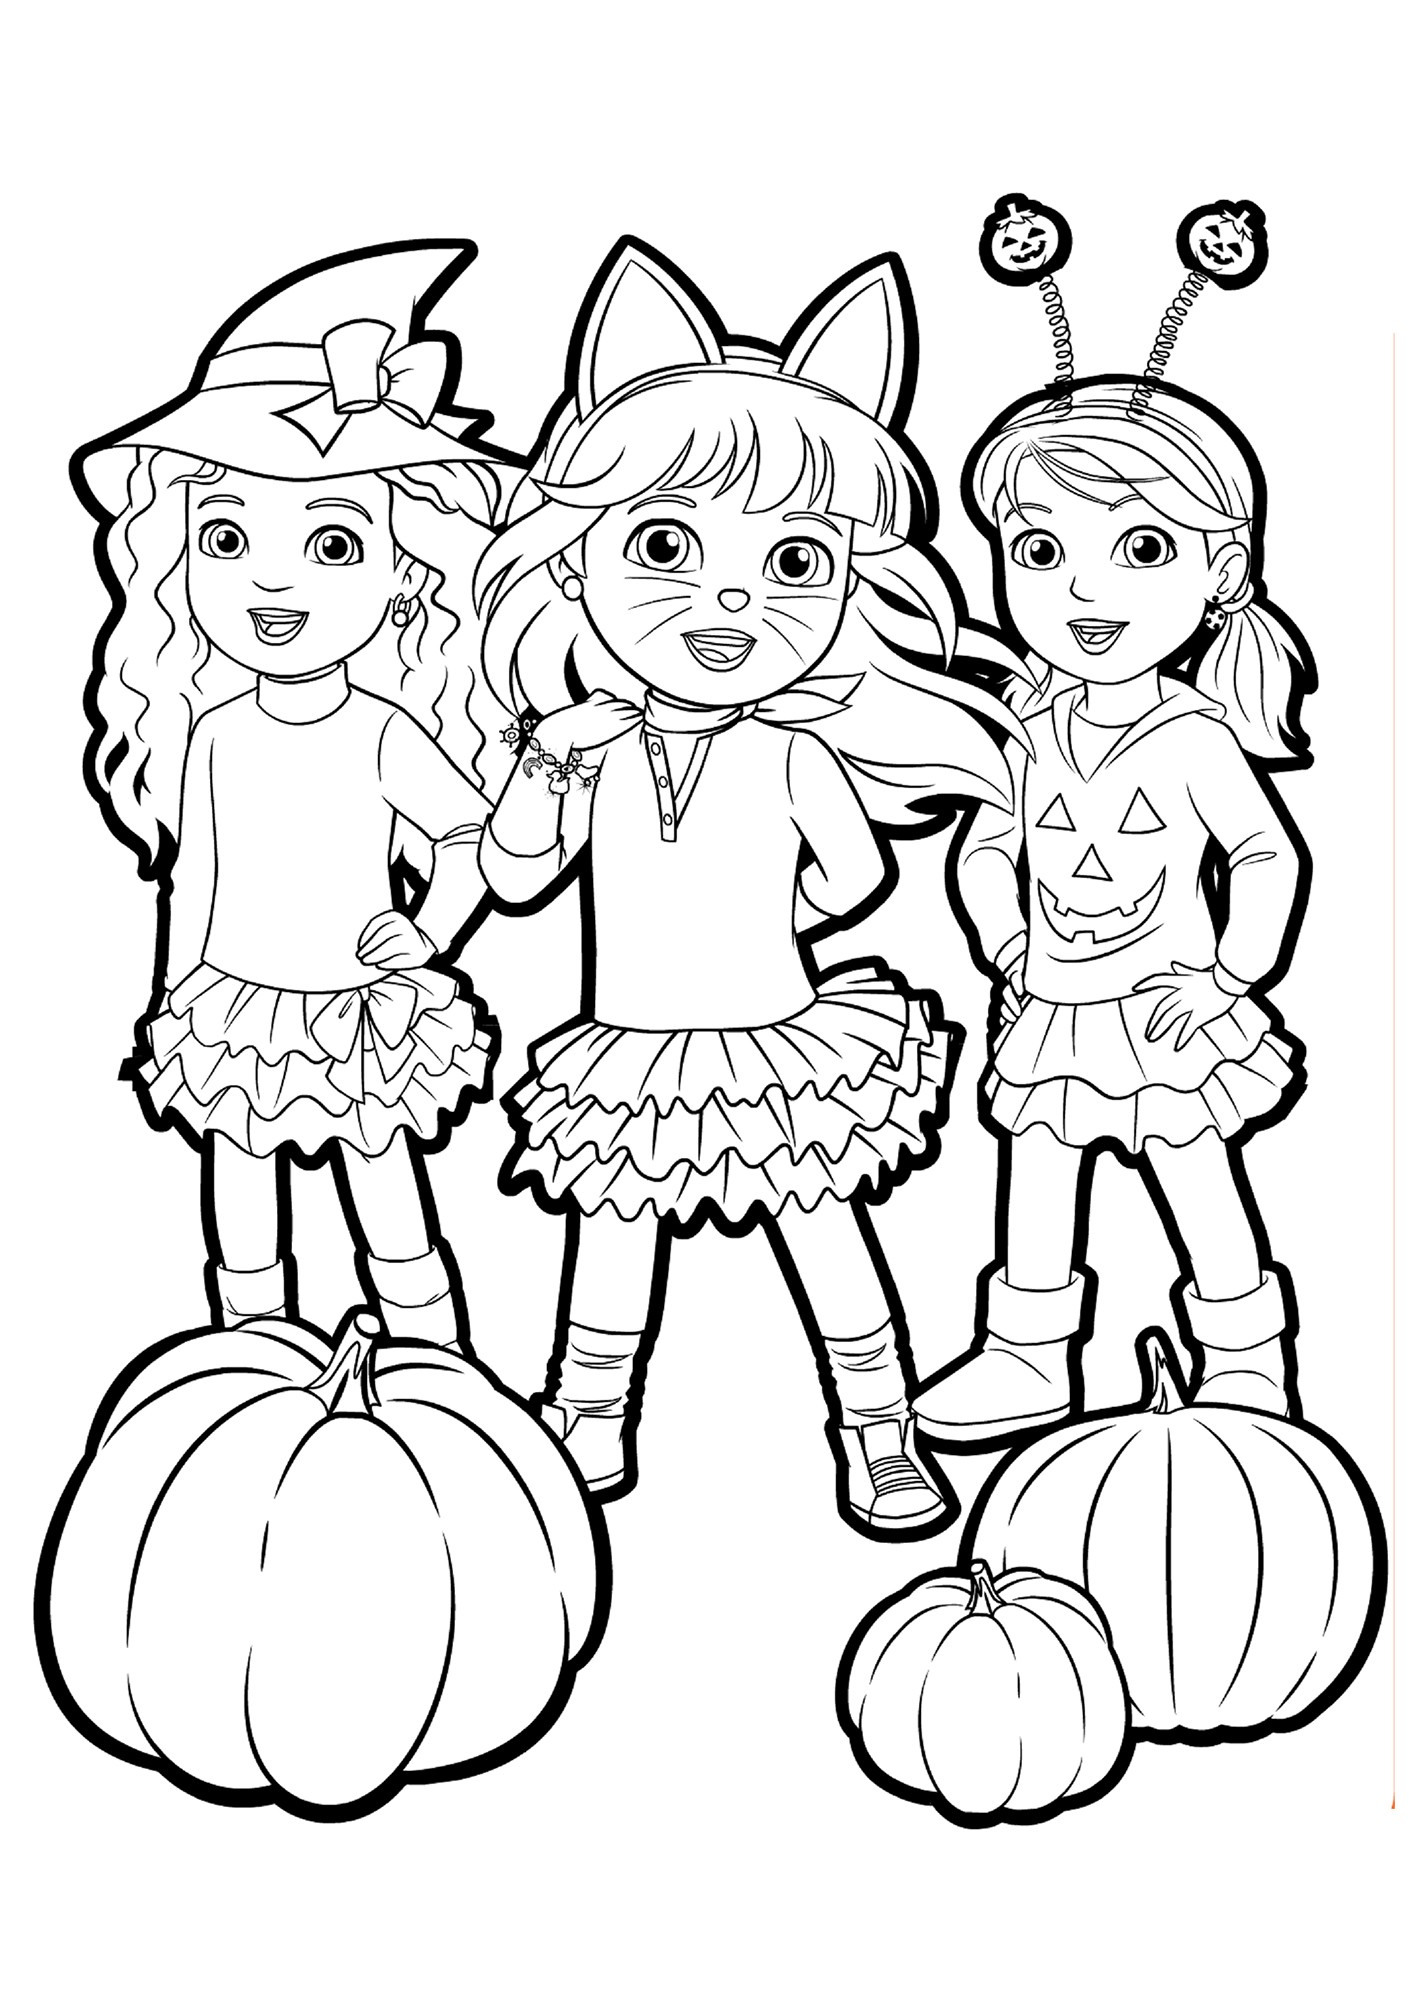 coloring pages dora and friends dora and friends drawing at getdrawings free download coloring pages dora friends and